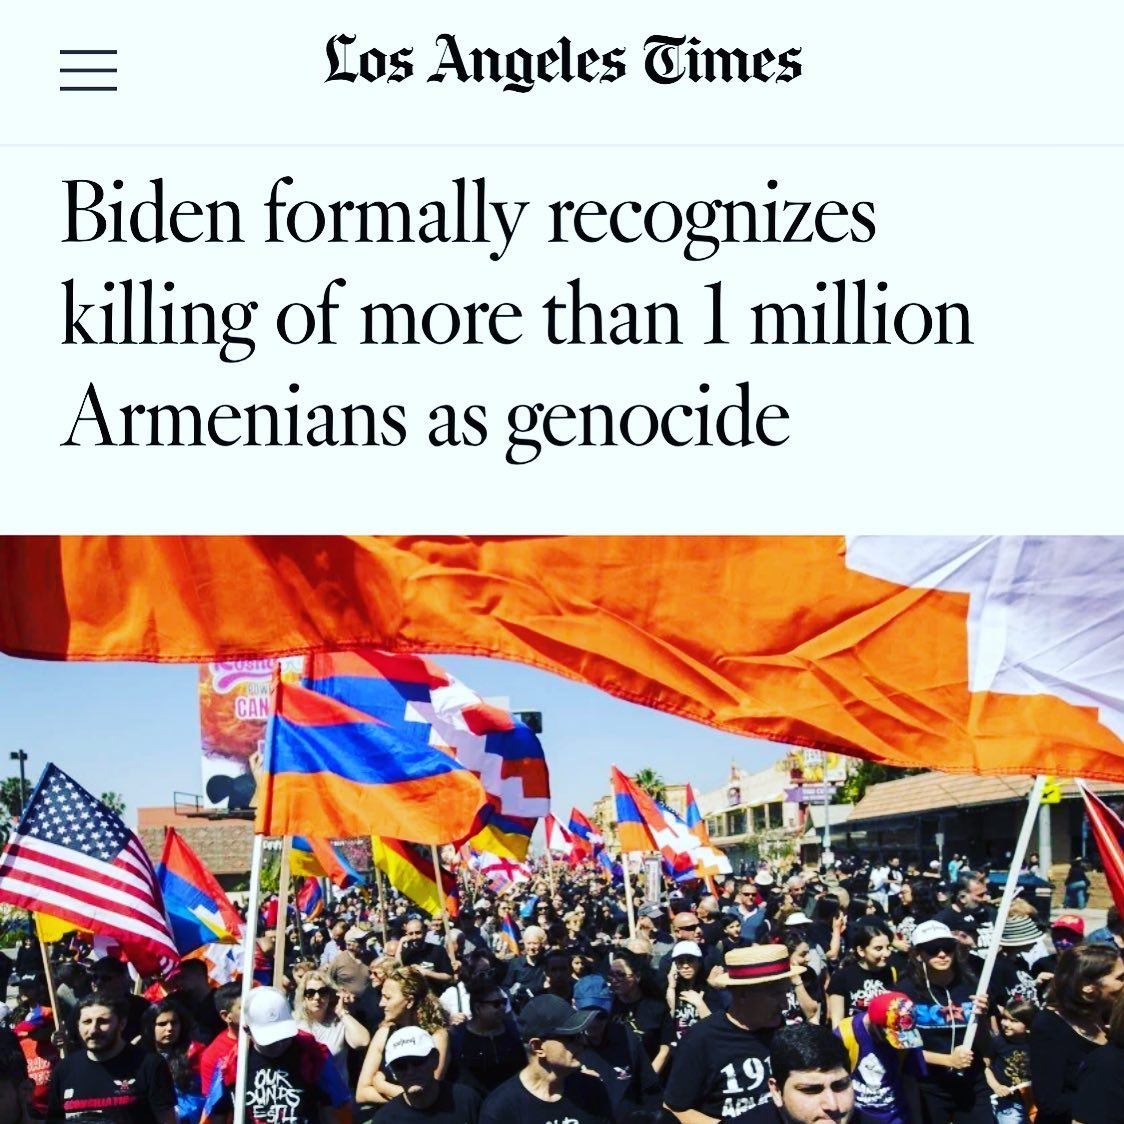 My grandparents met as orphans after their entire families were systematically murdered in the Armenian Genocide. Today is a historic day that finally honors the lives we all lost. #1915neveragain